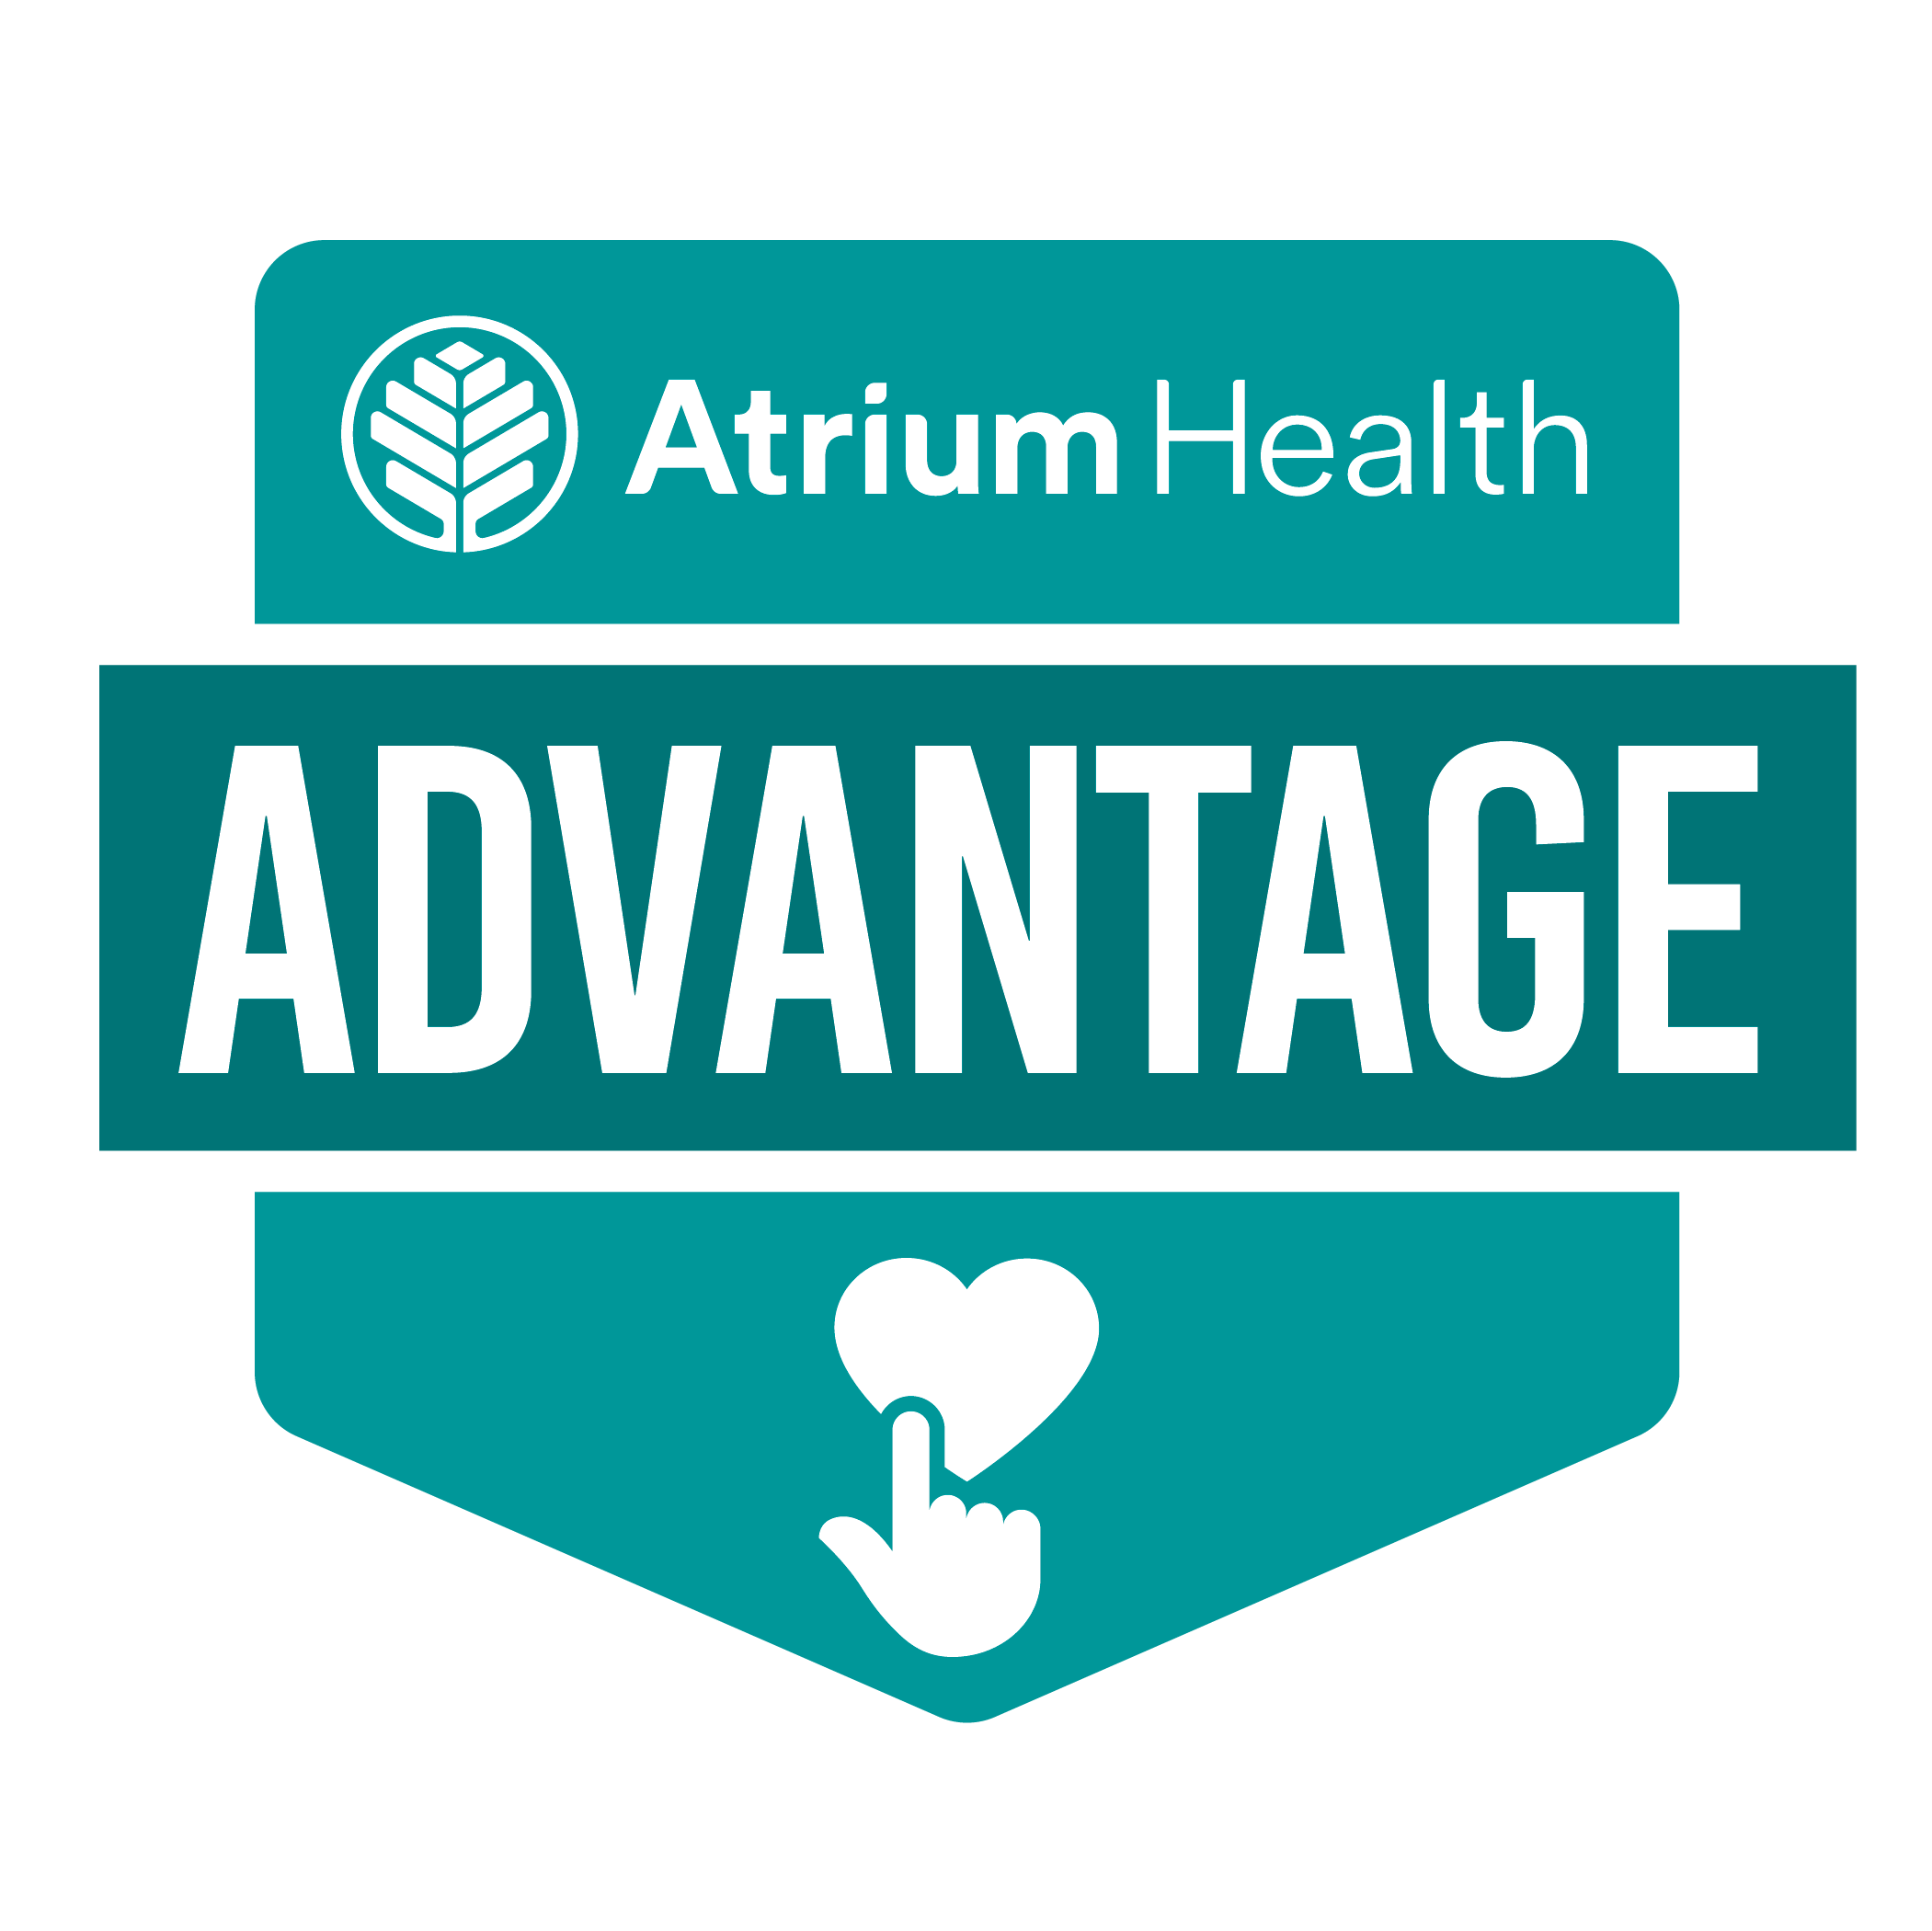 Atrium Health Advantage